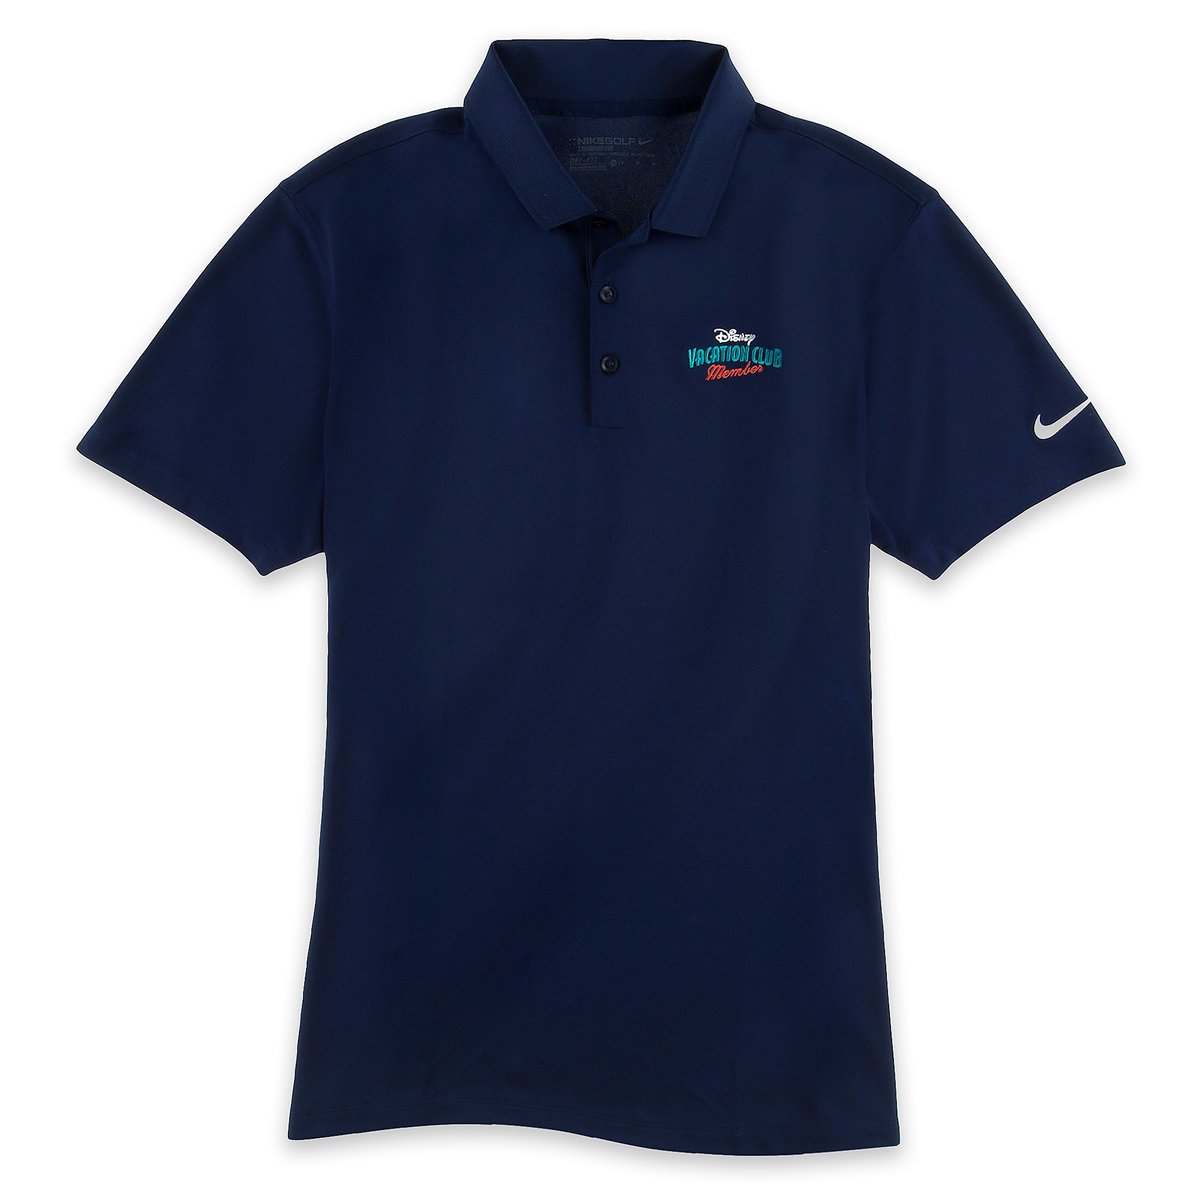 508dd321 Product Image of Disney Vacation Club Polo Shirt for Men by Nike Golf # 1